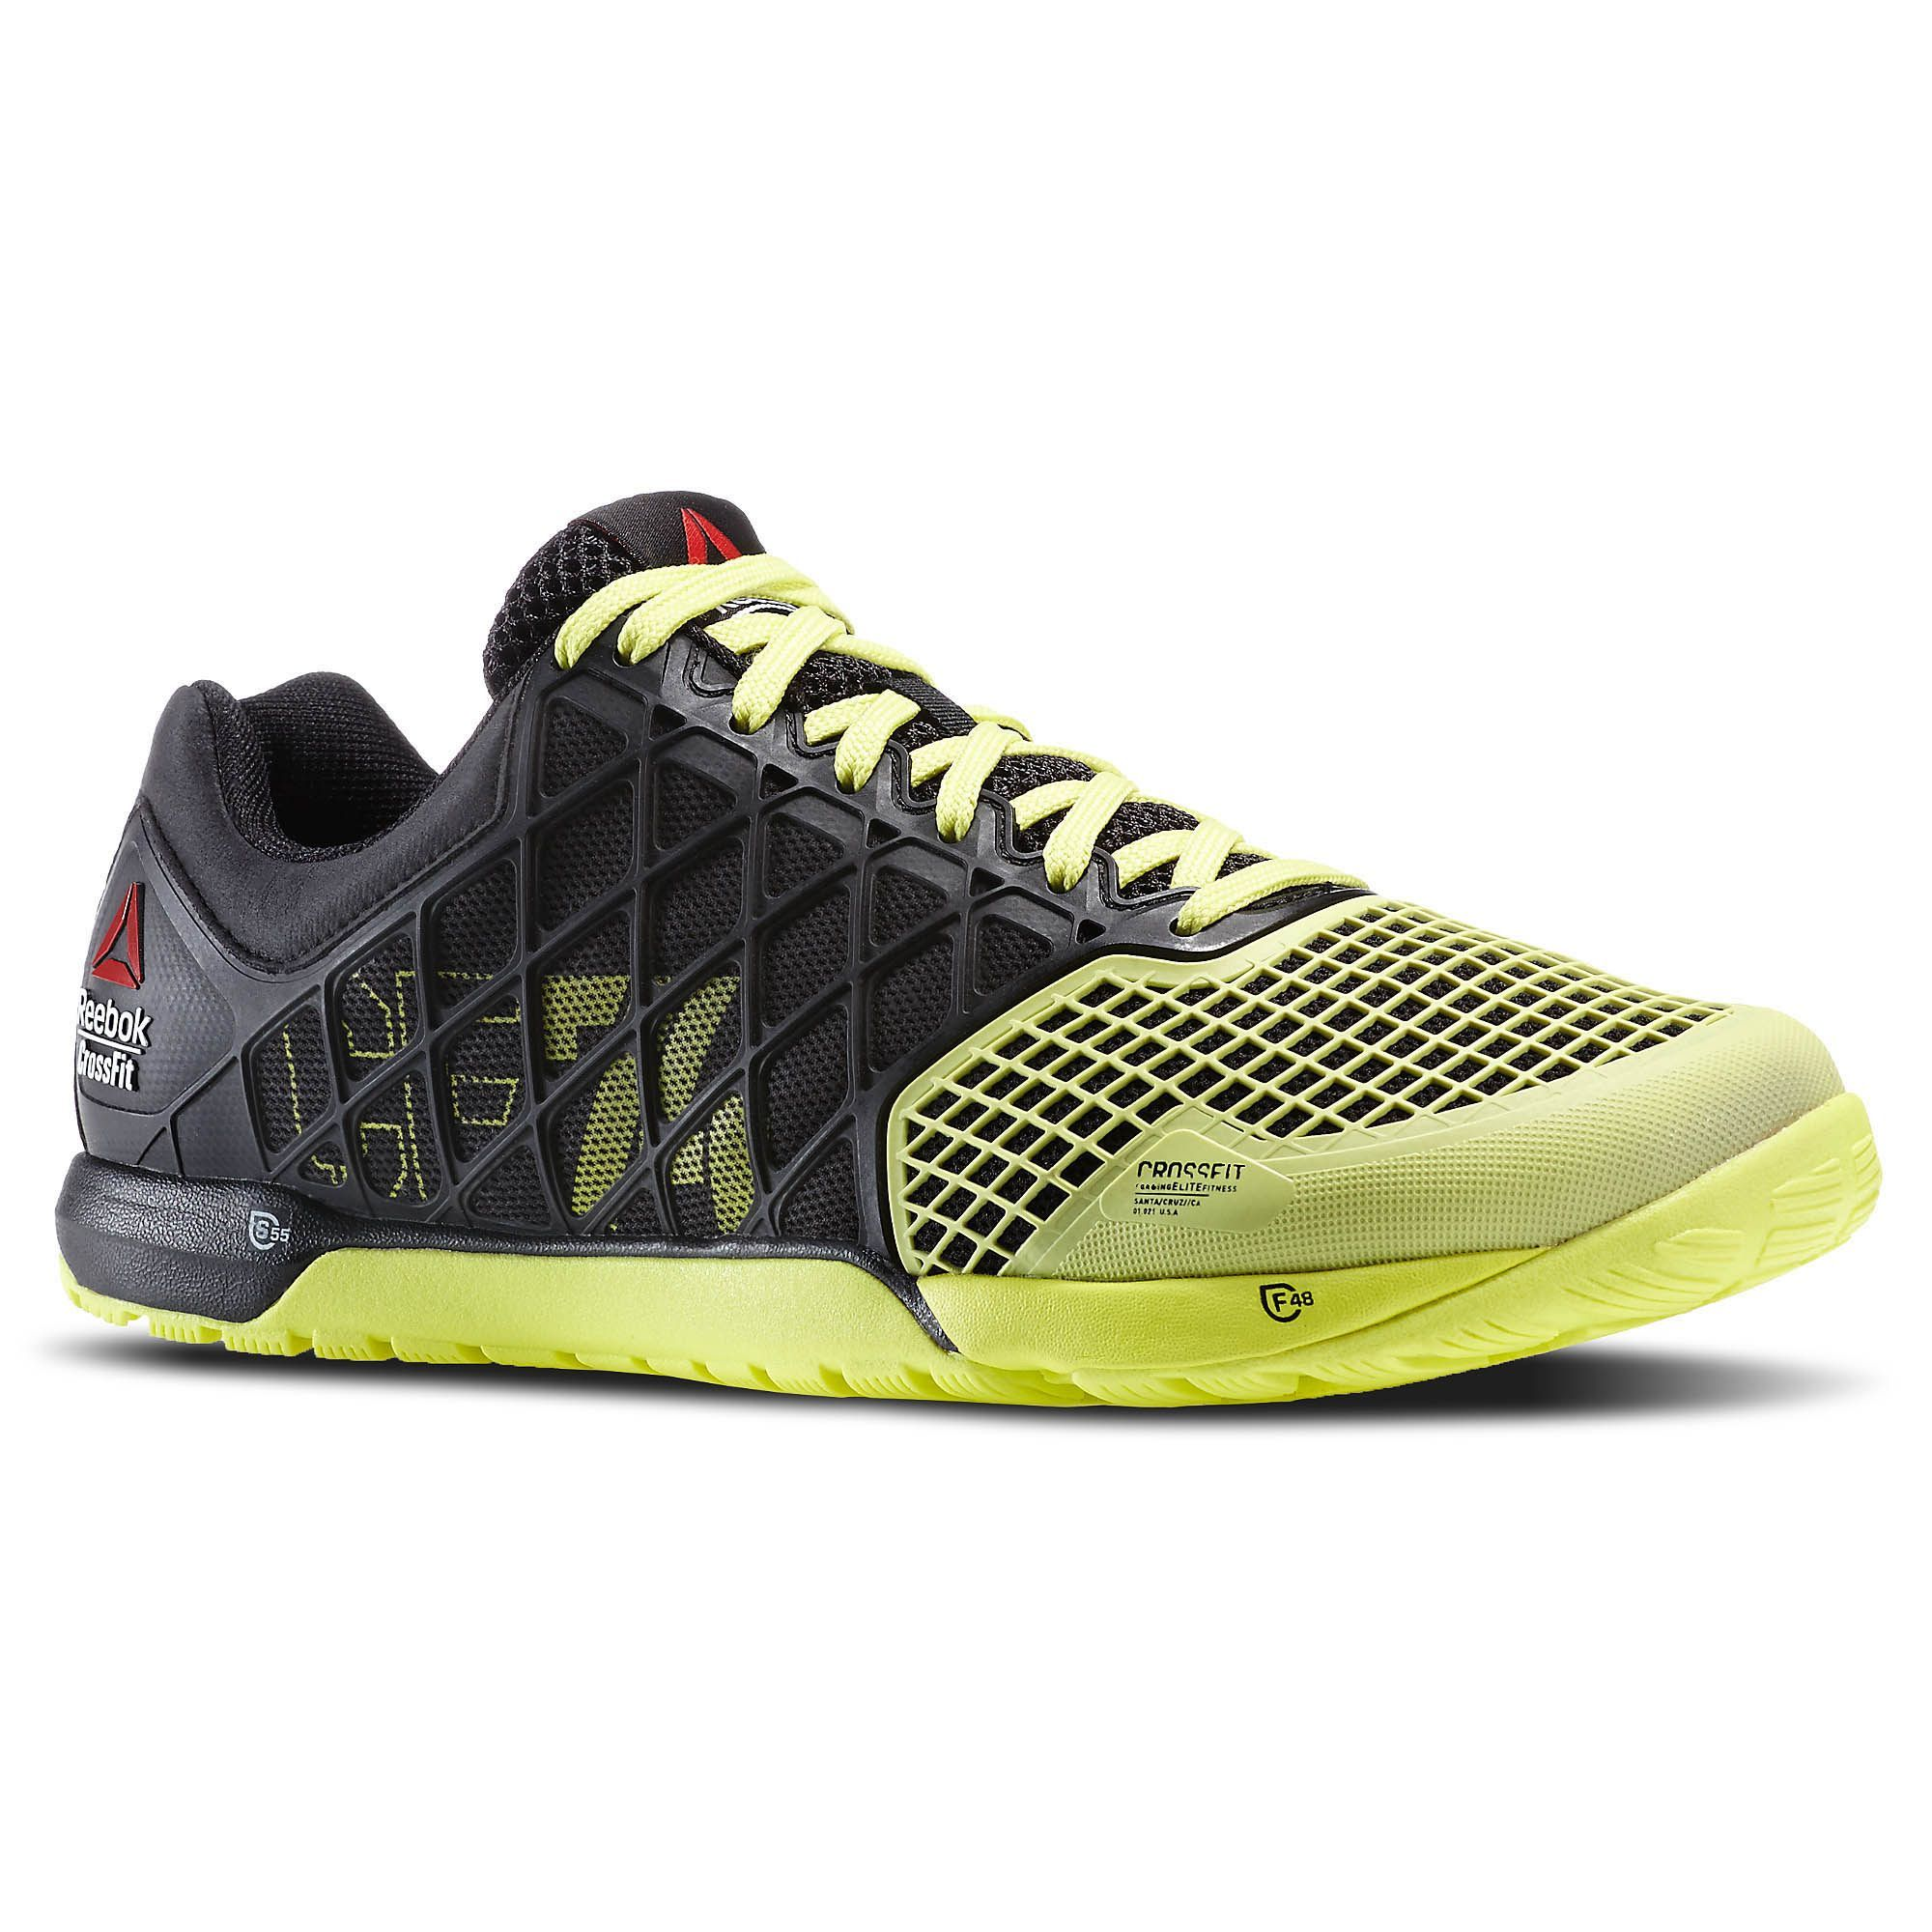 What makes a good running shoe We handpicked the best shoes based on price comfort durability and much more Check our list of top 5 shoes